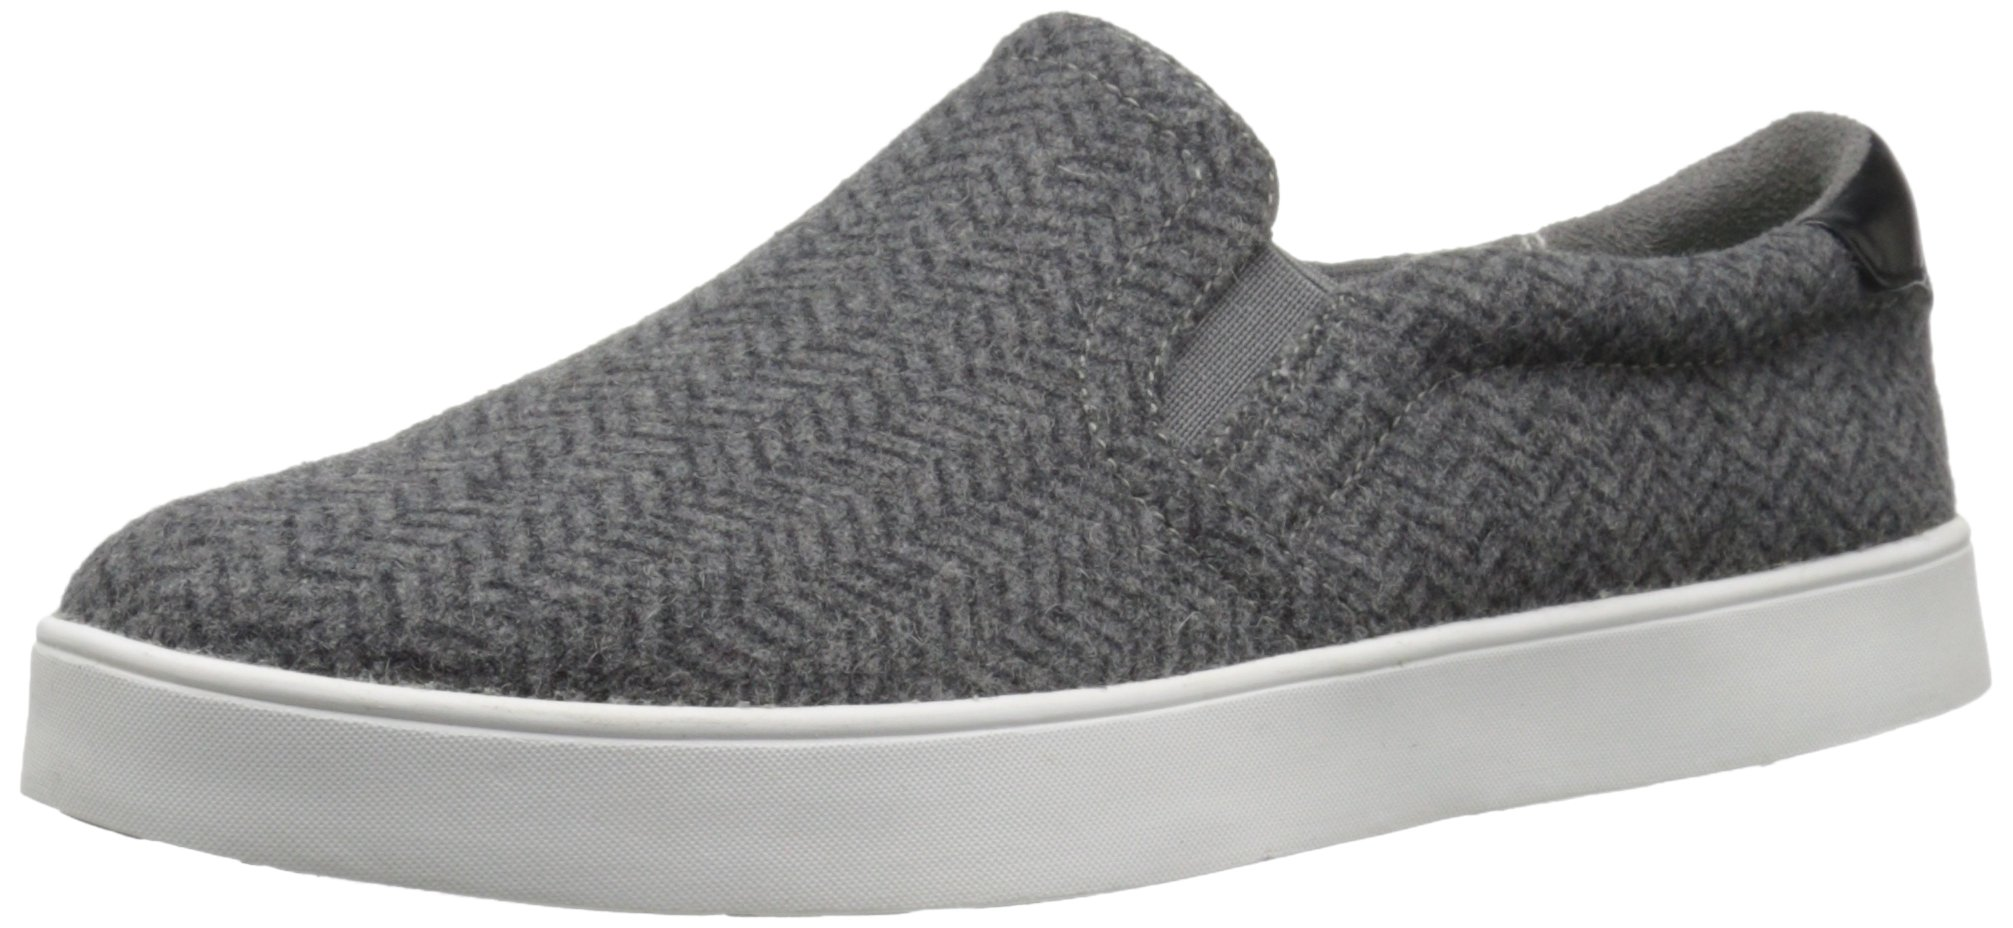 Dr. Scholl's Shoes Women's Madison Fashion Sneaker, Grey/Black Herringbone Flannel, 6 M US